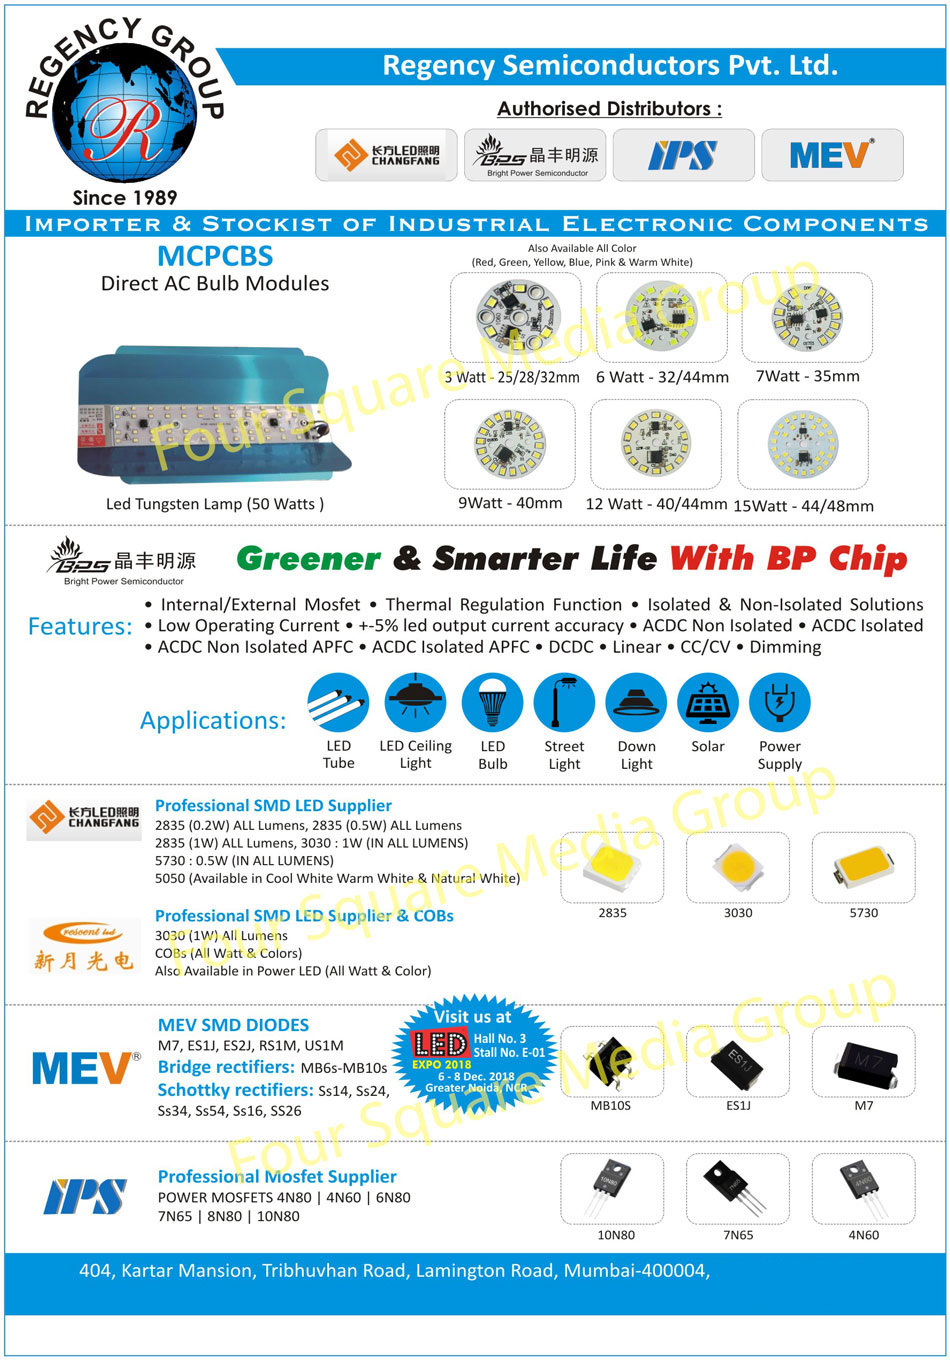 BP Chips, SMD Diodes, Bridge Rectifiers, Schottky Rectifiers, Bulb Modules, SMD Leds, Mosfets, Electronic Components